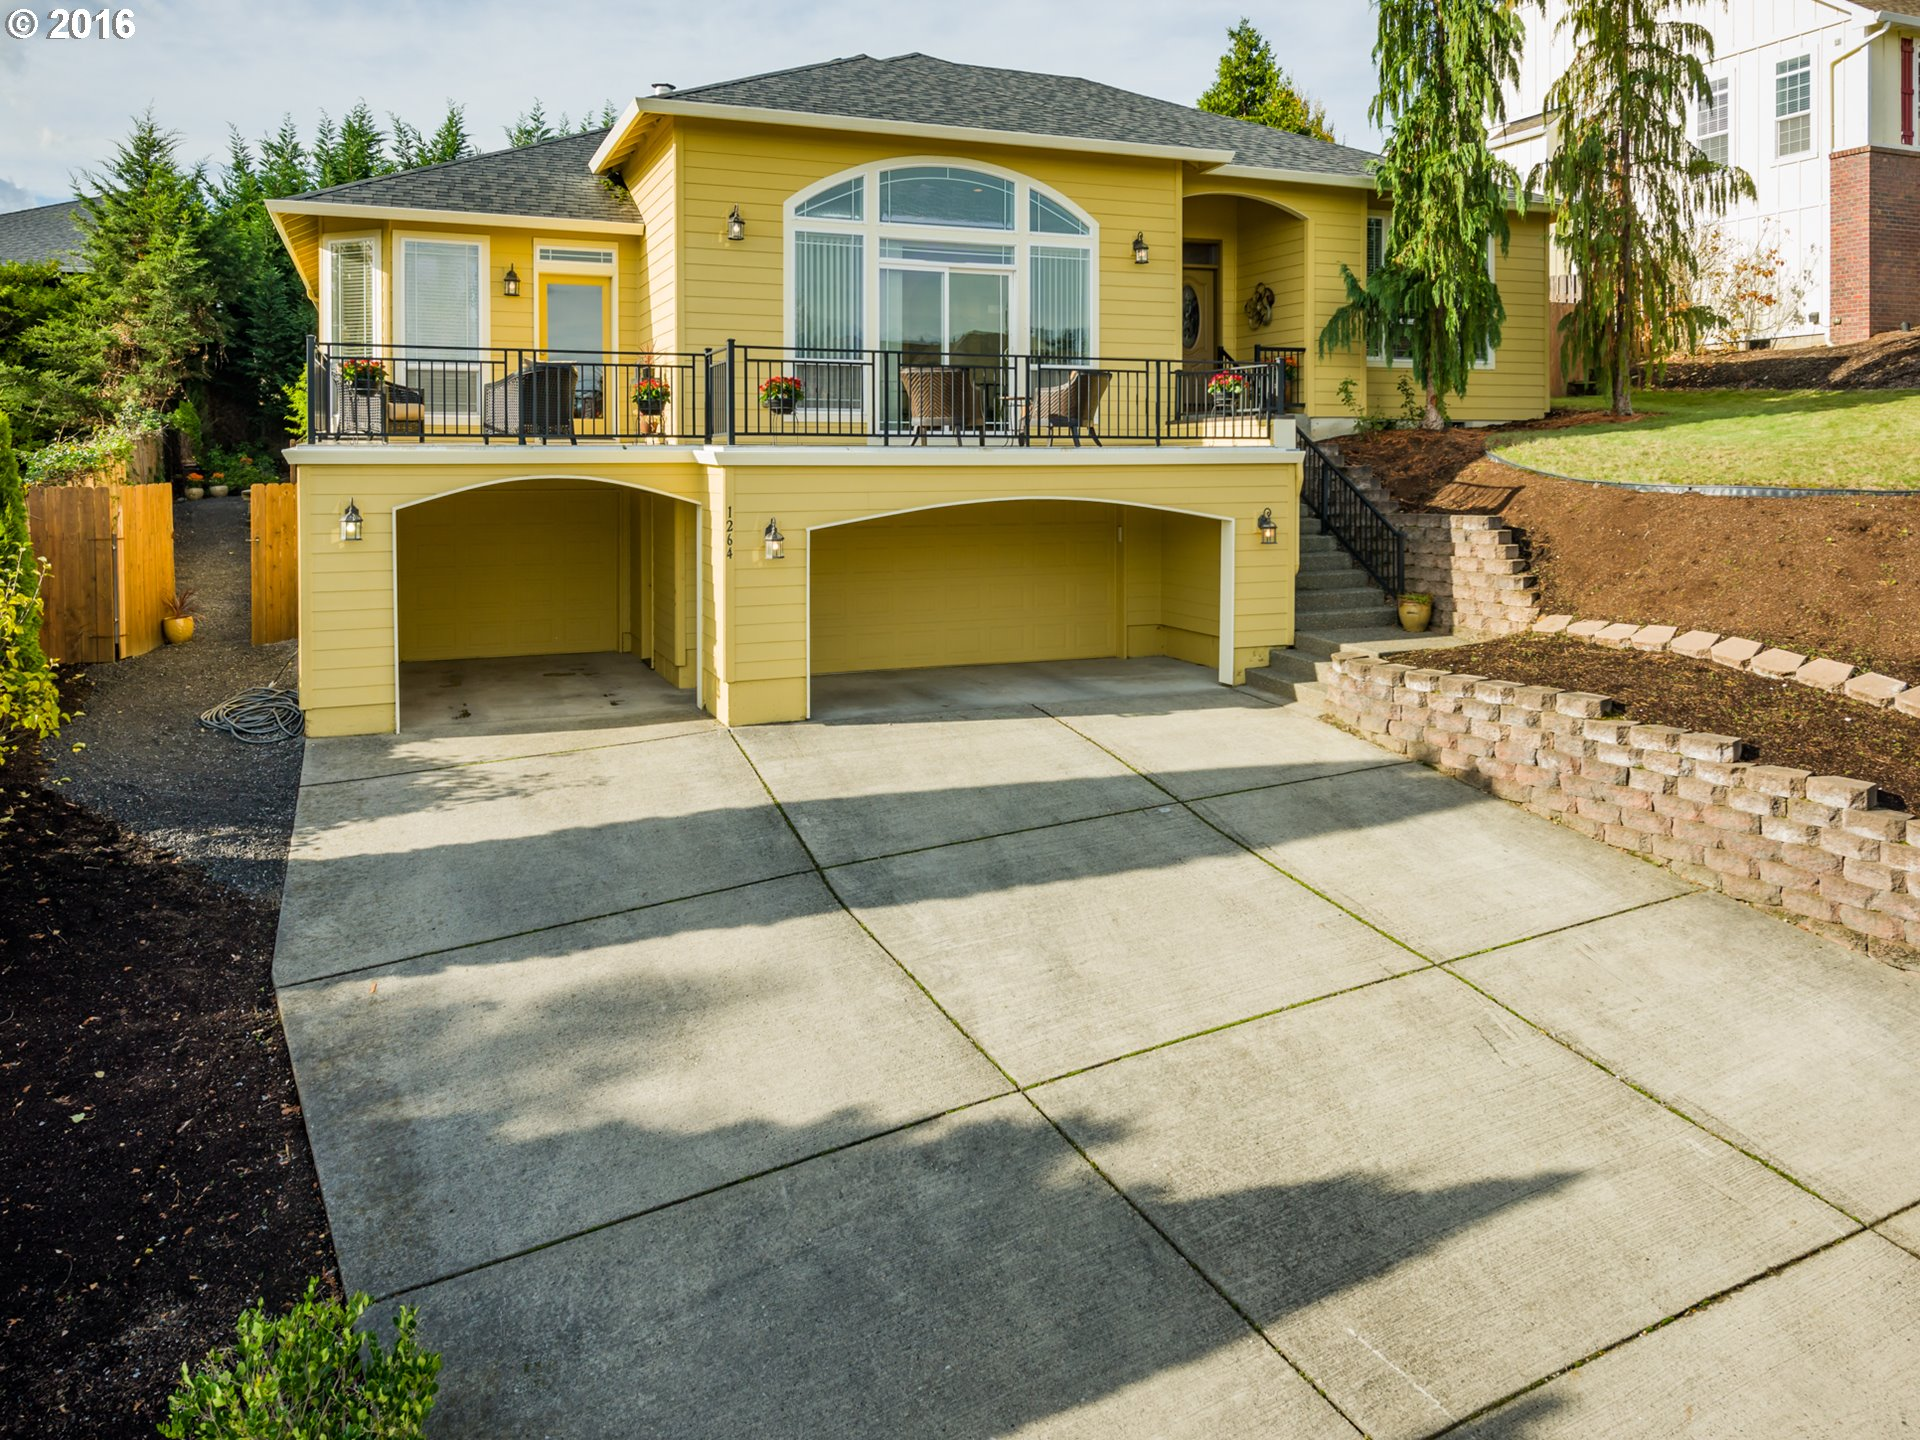 1264 E SPENCER CT, La Center, WA 98629